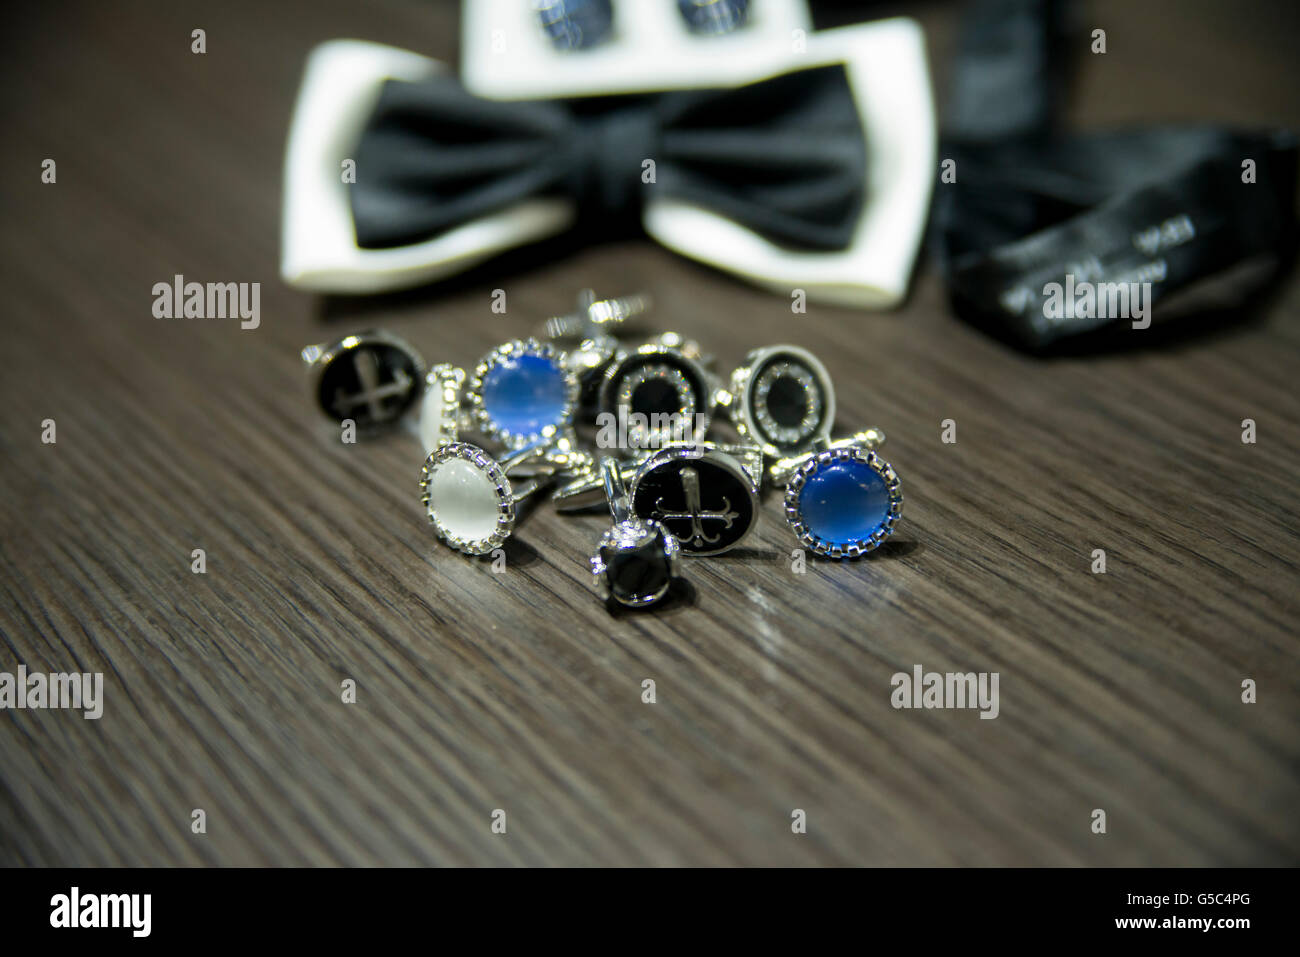 Assorted cuff links on wooden table with bow tie and accessories in the background - Stock Image